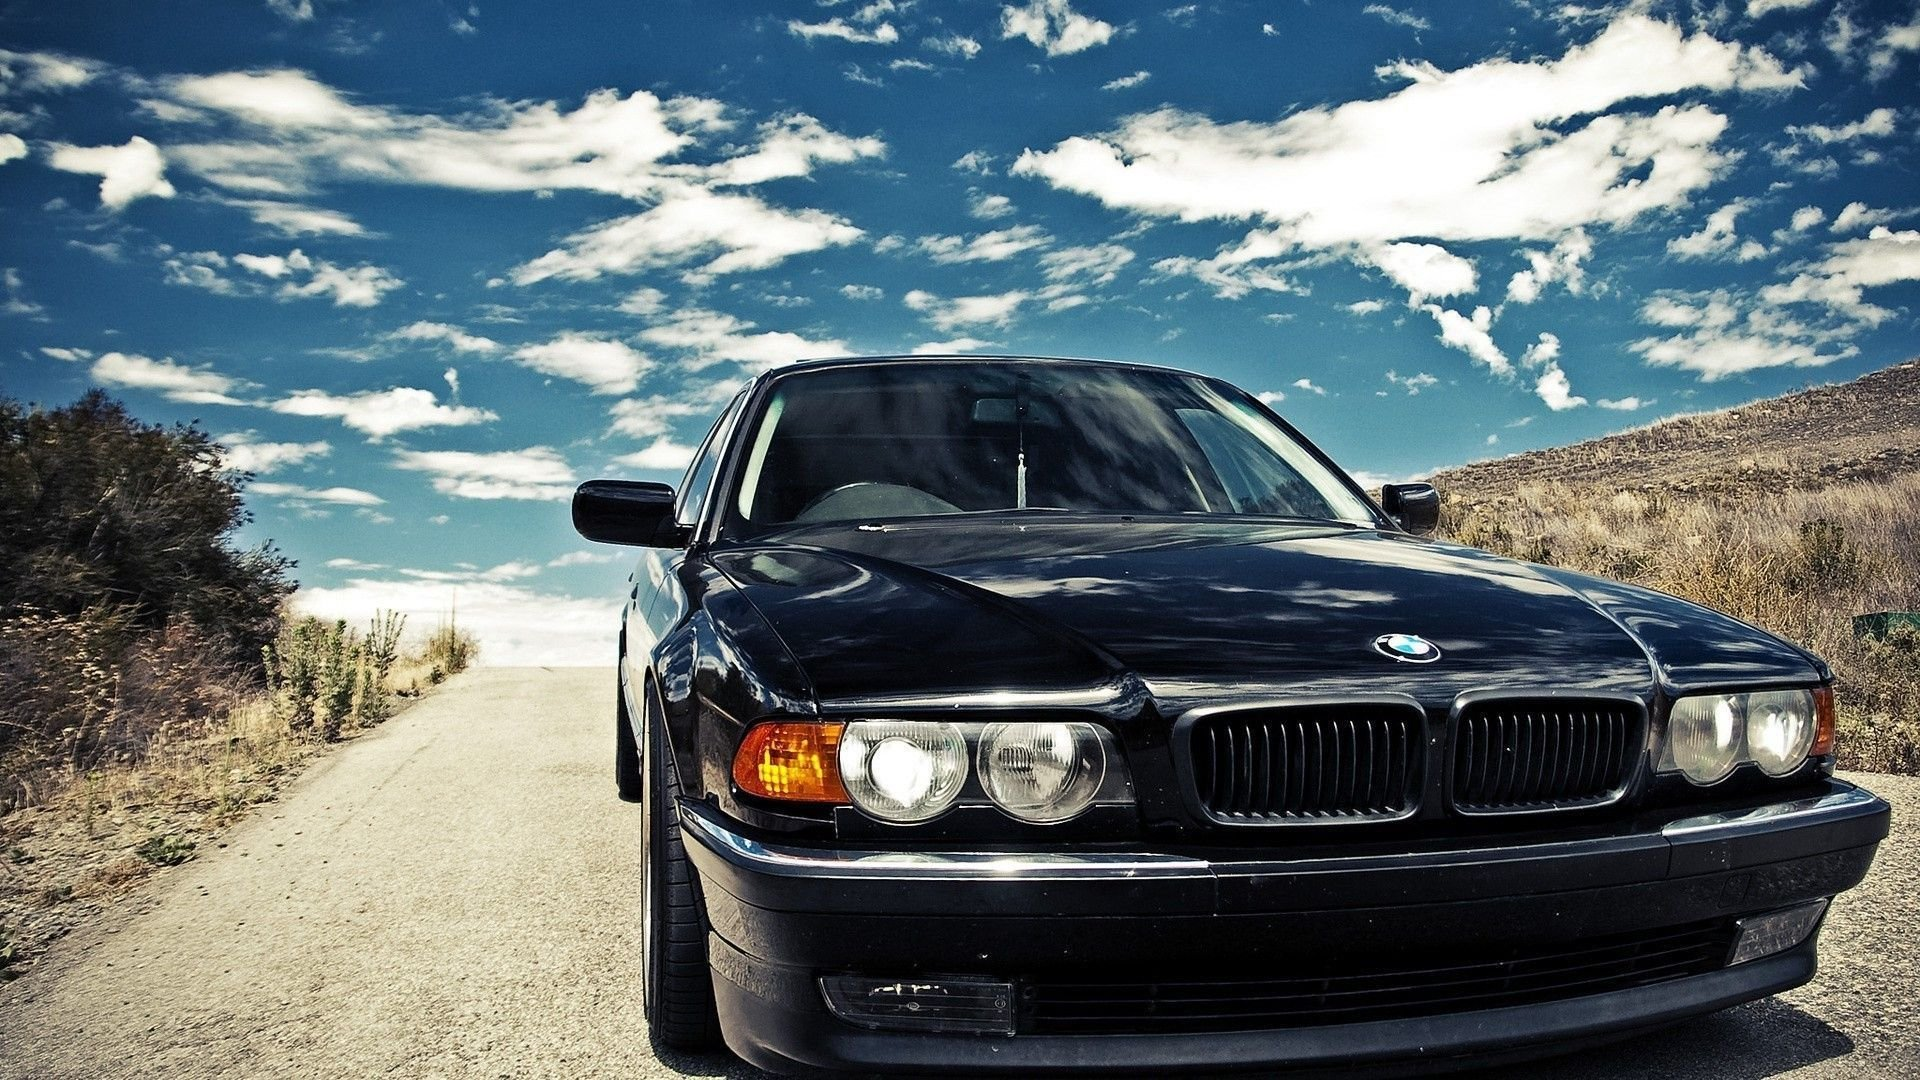 Latest Bmw 7 35Il E38 Car Wallpapers Free Download All Series Free Download